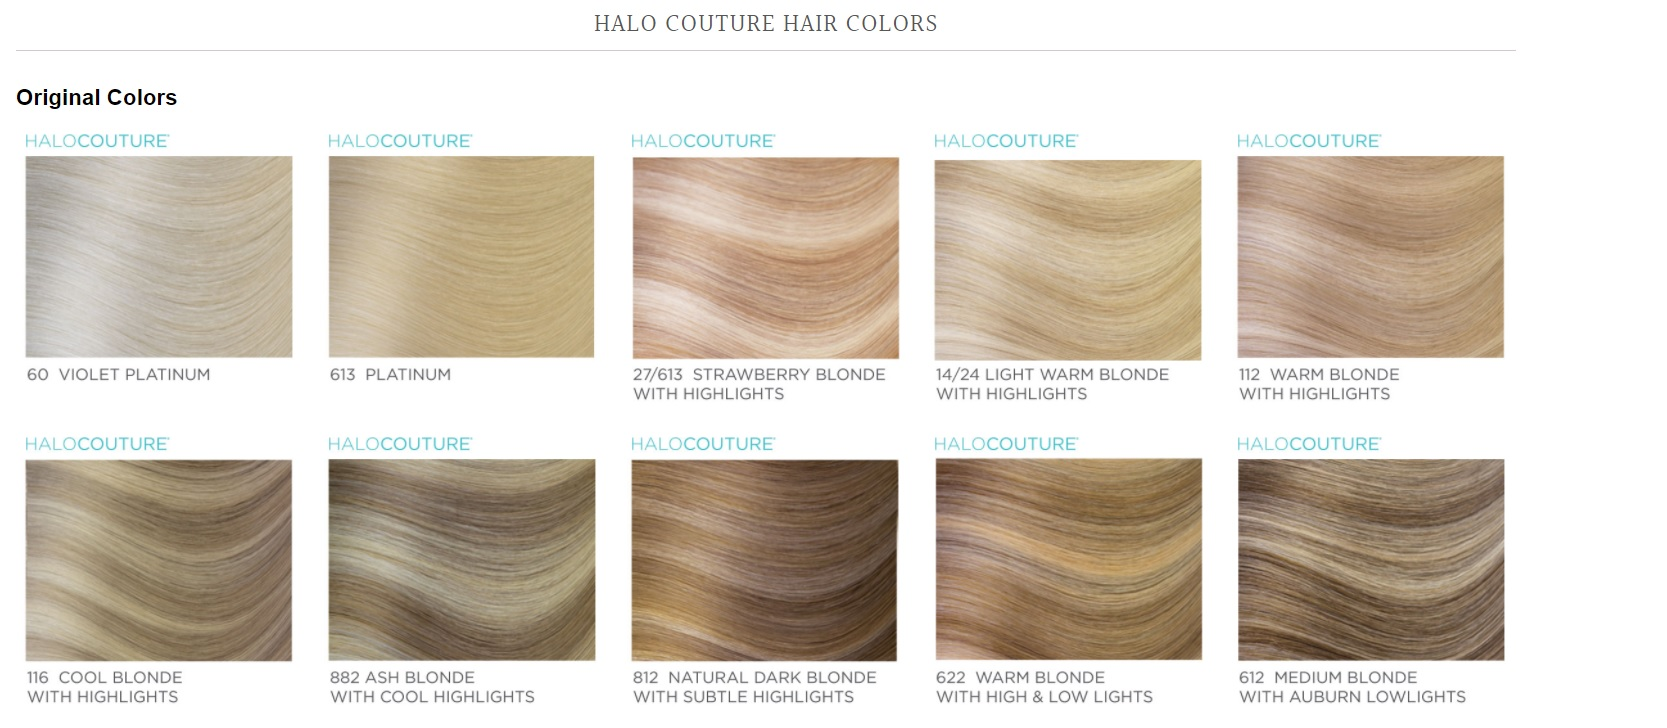 Halo Extension Colors Halo Couture Purchase Hair Extensions The